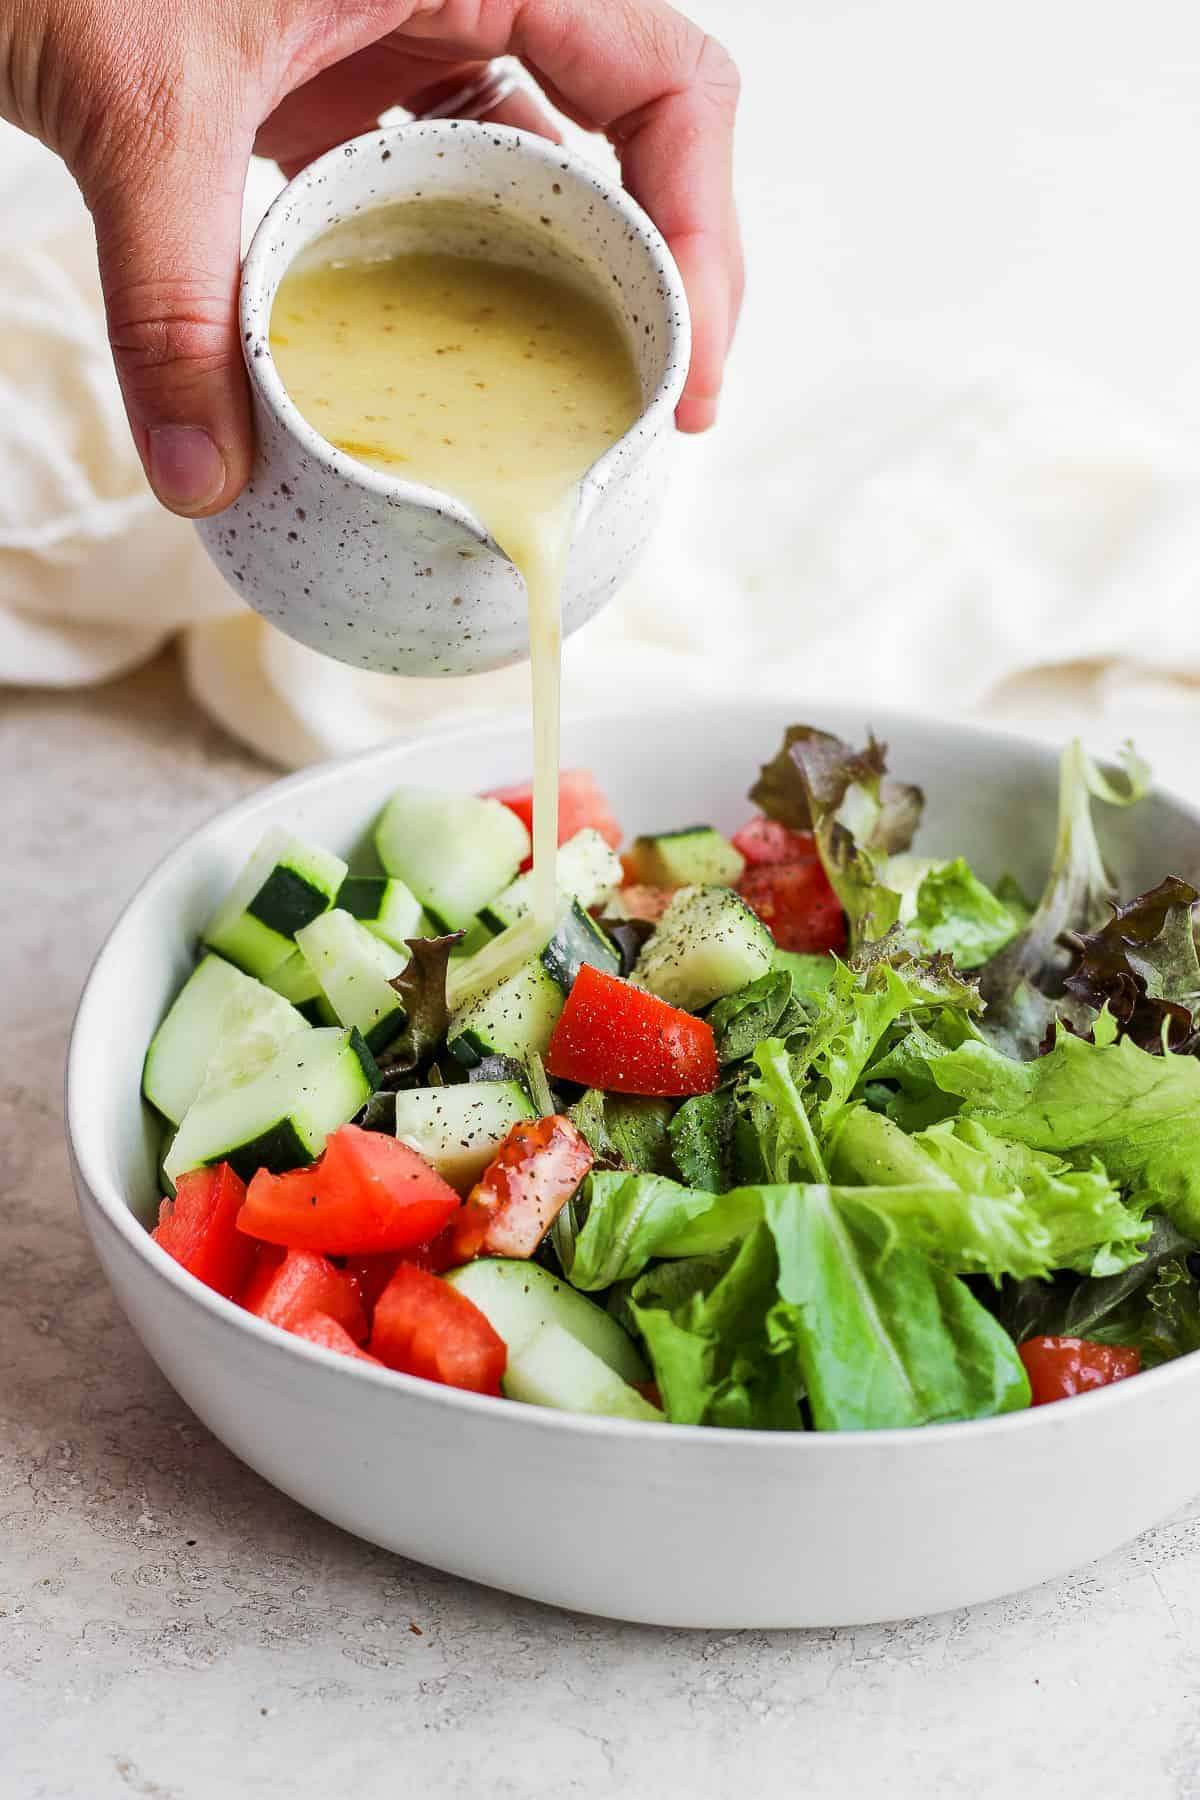 How To Make Salad Dressing 2 Methods Feelgoodfoodie